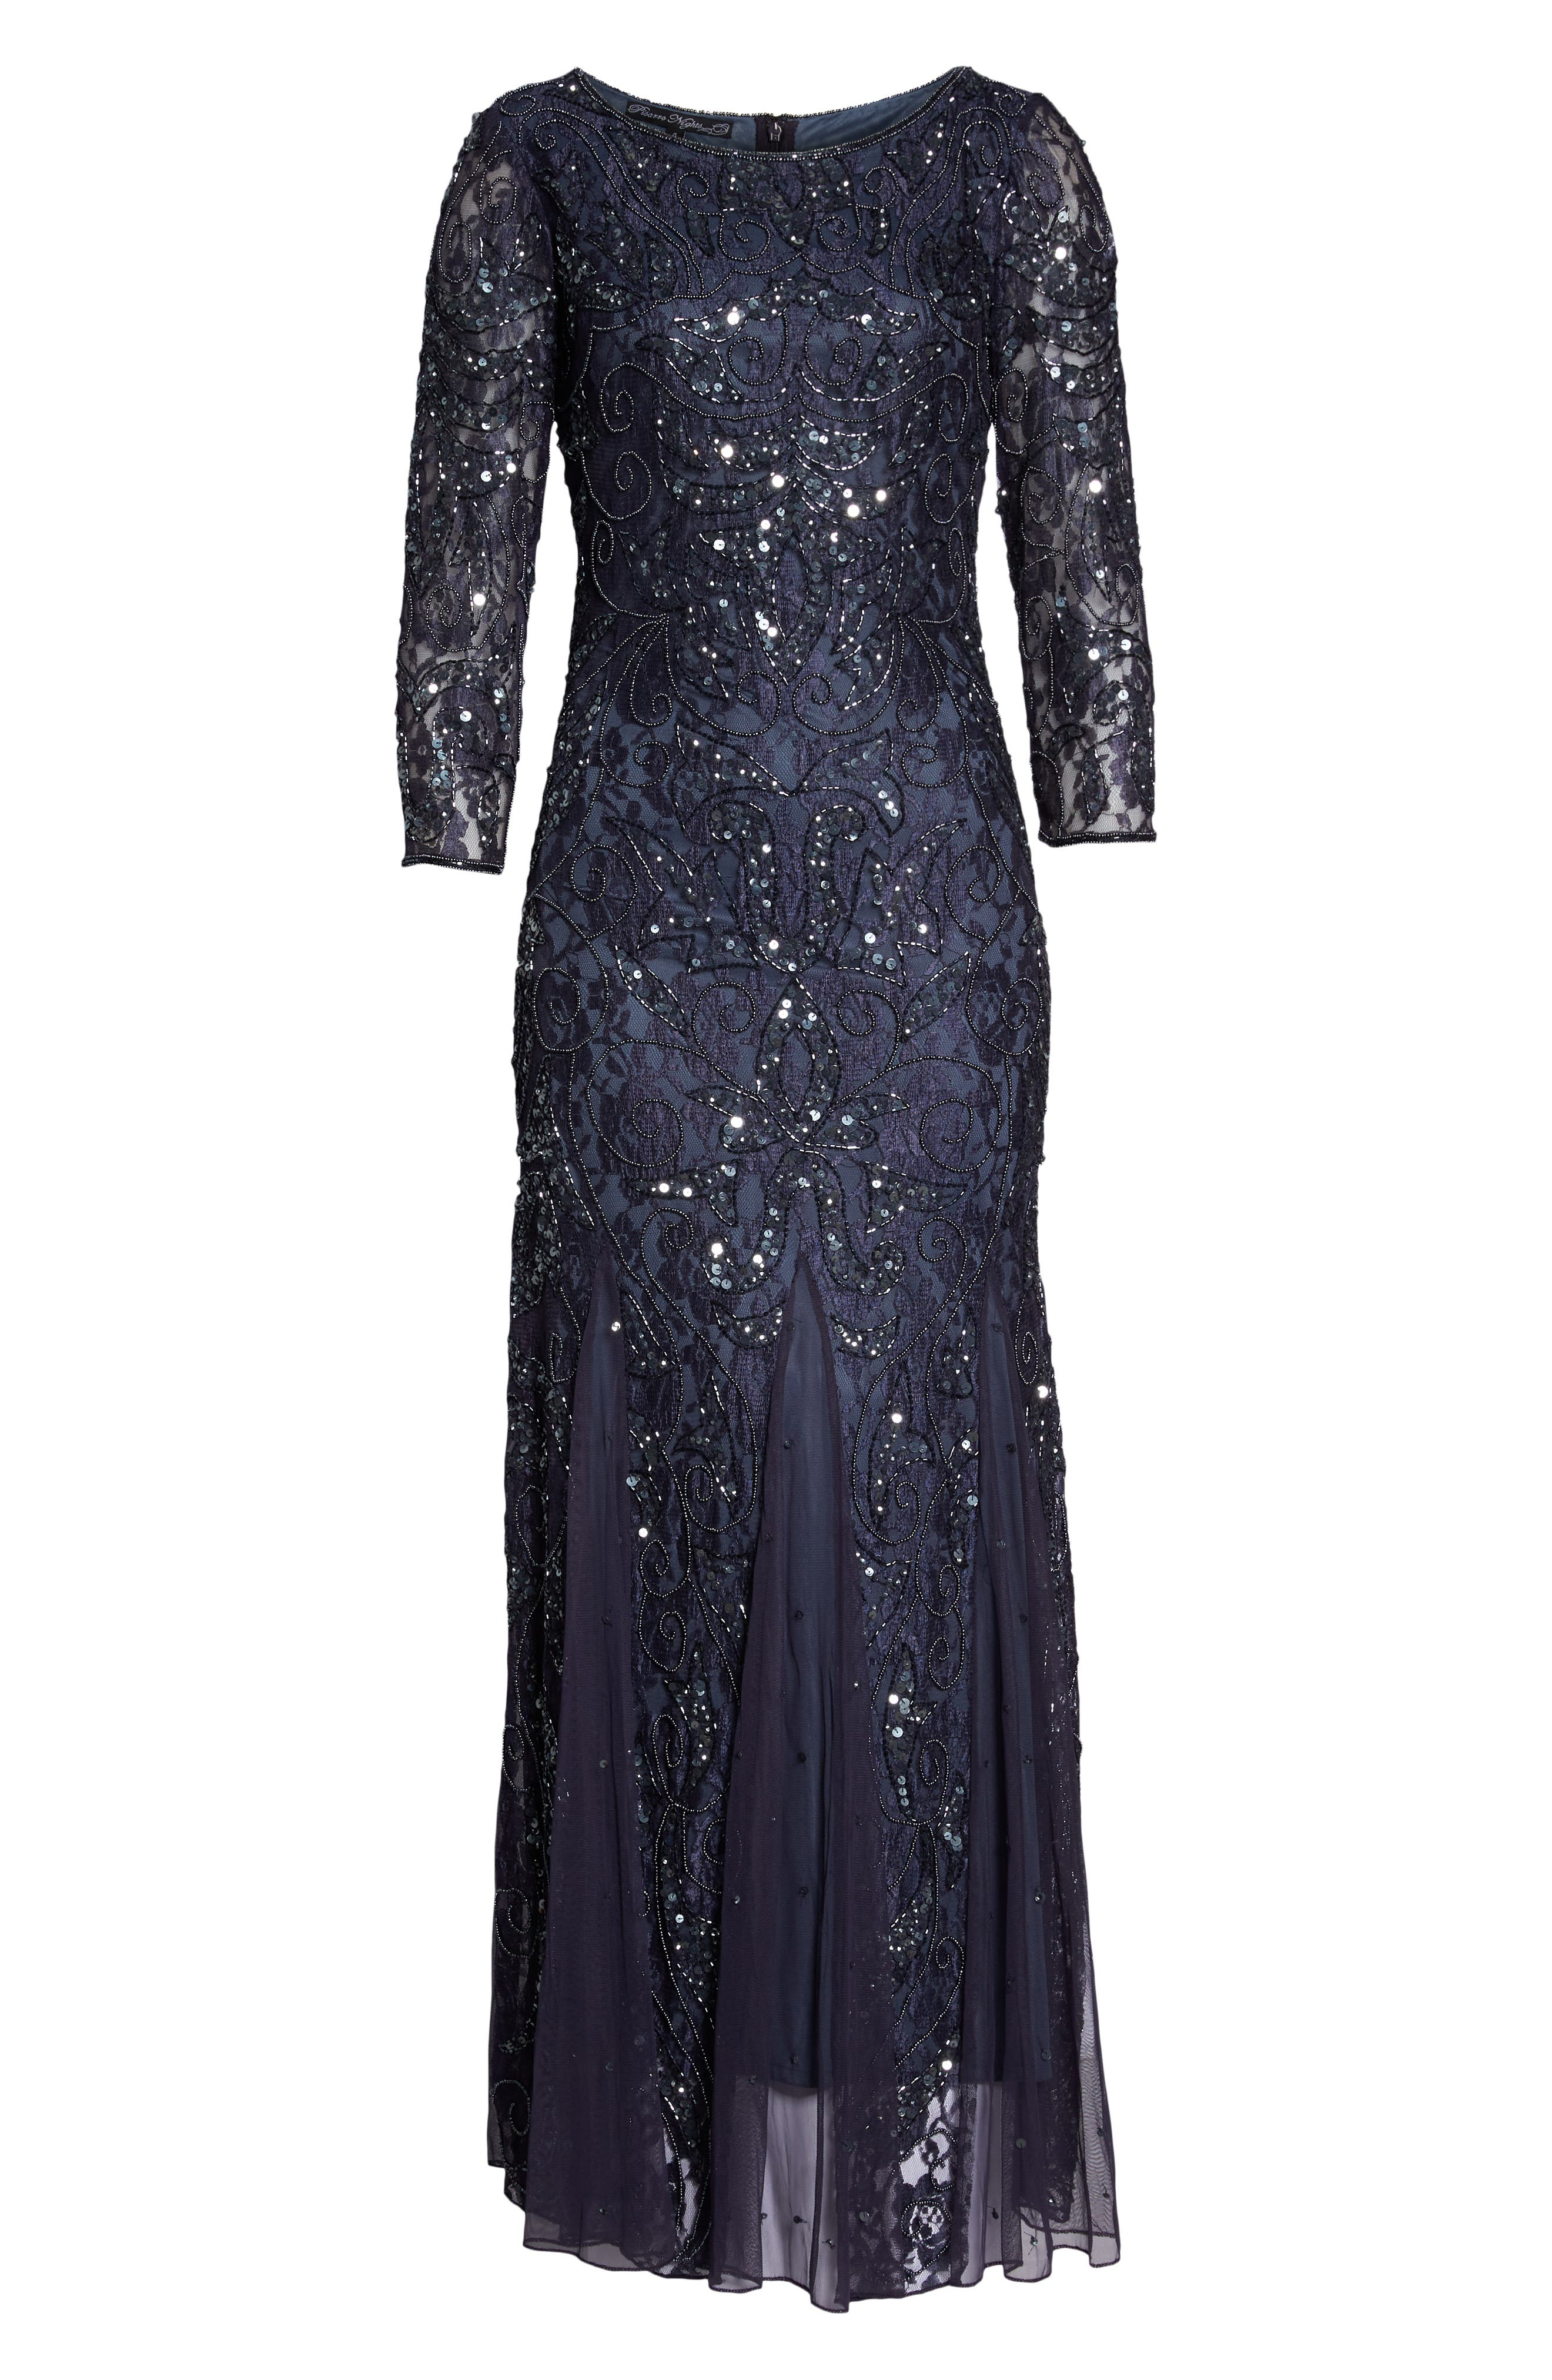 PISARRO NIGHTS, Beaded Lace Gown, Alternate thumbnail 7, color, 020